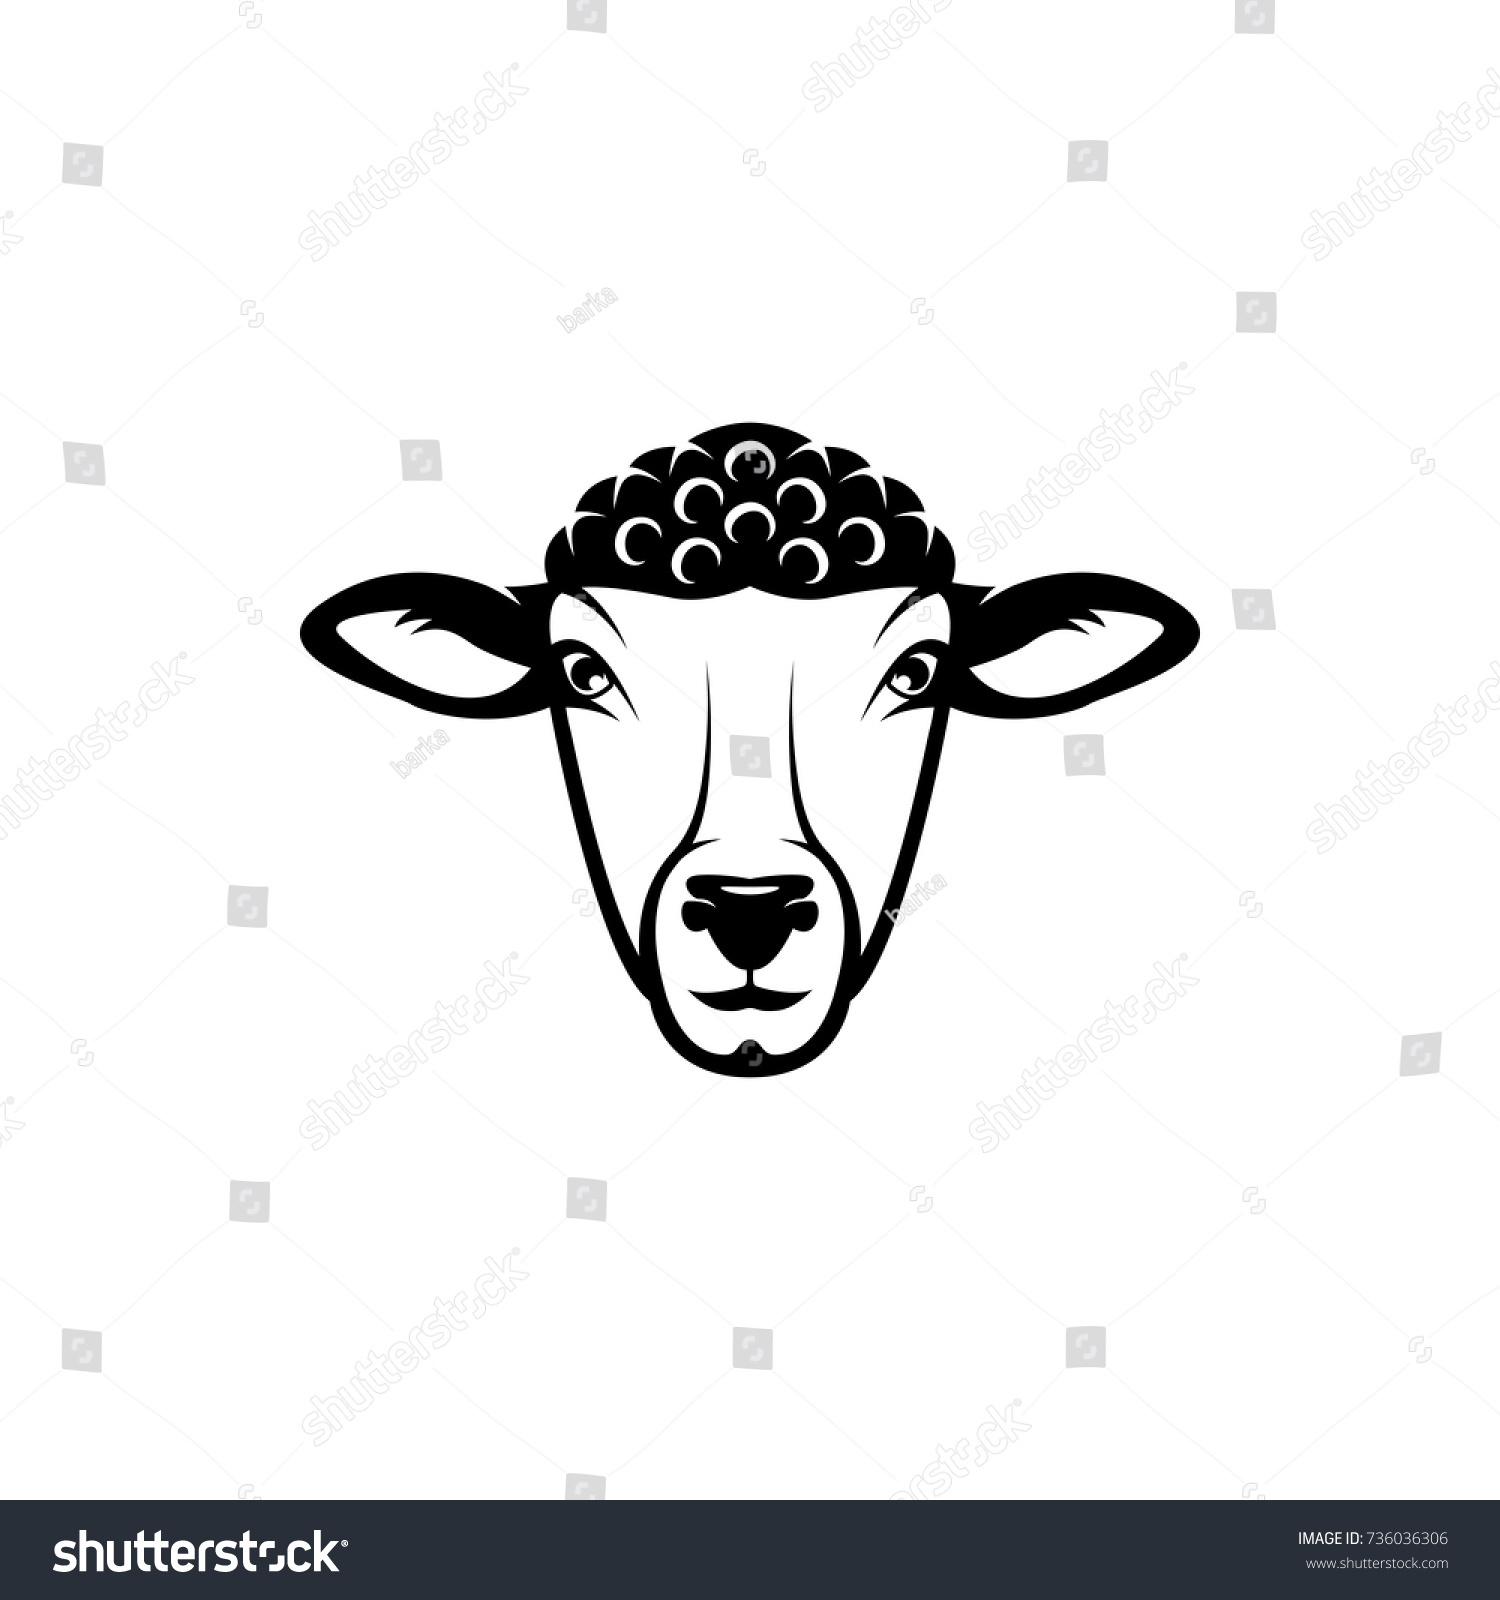 Vector Sheep Head Face Retro Logos Stock Vector 736036306 - Shutterstock